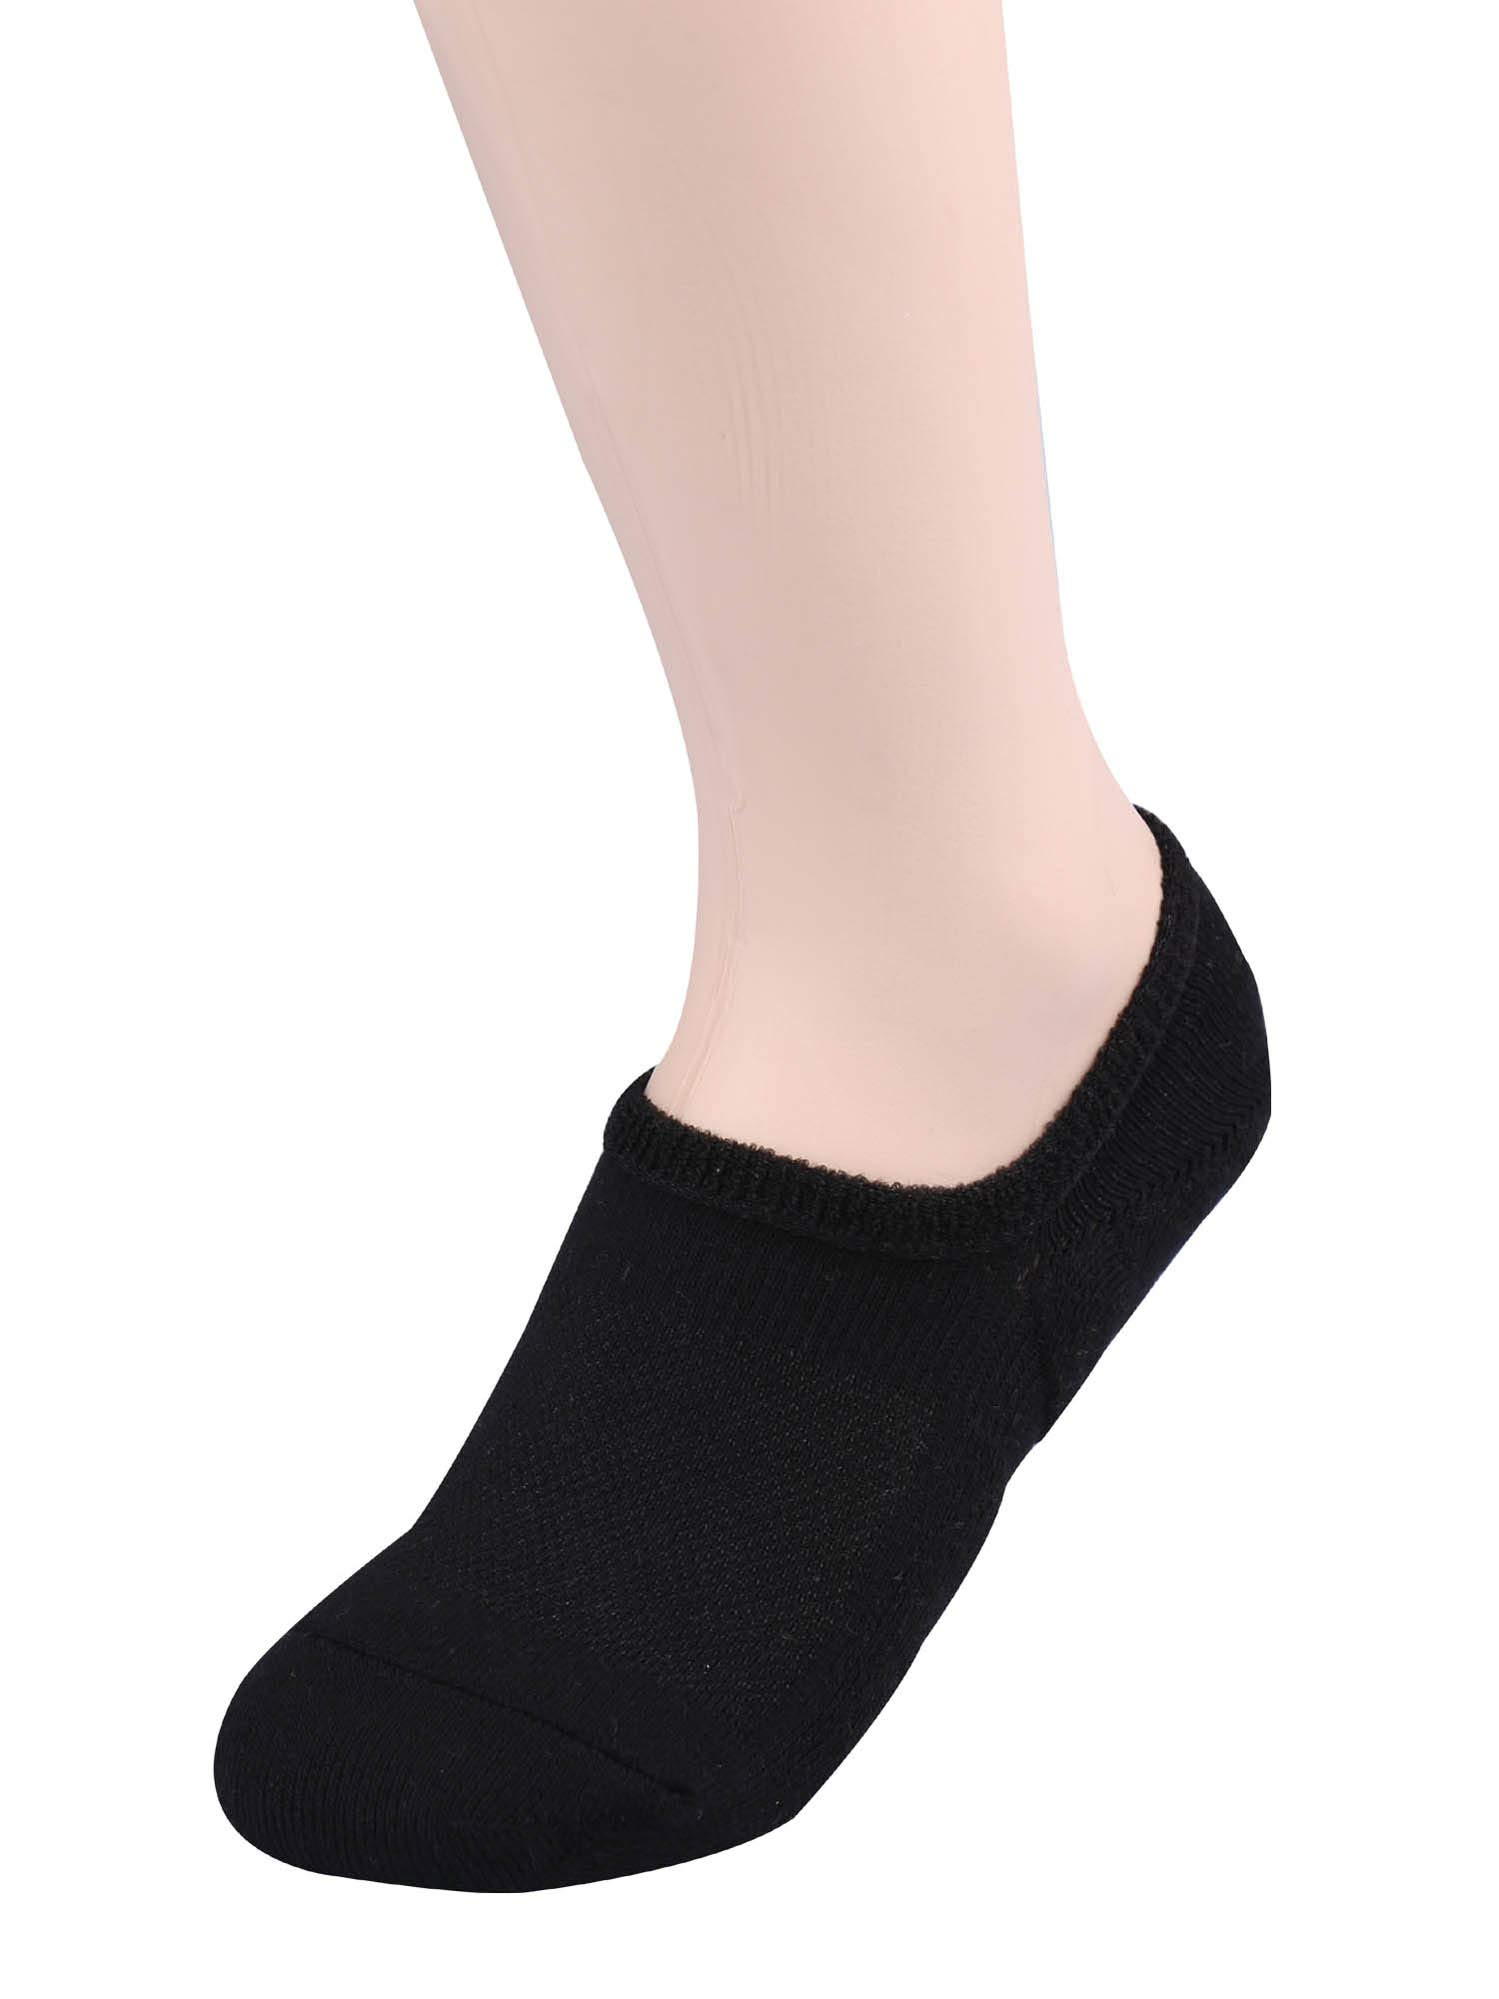 TETIBA Thick Cushion Cotton No Show Athletic Sport Socks 3 Sizes Men & Women With Non Slip